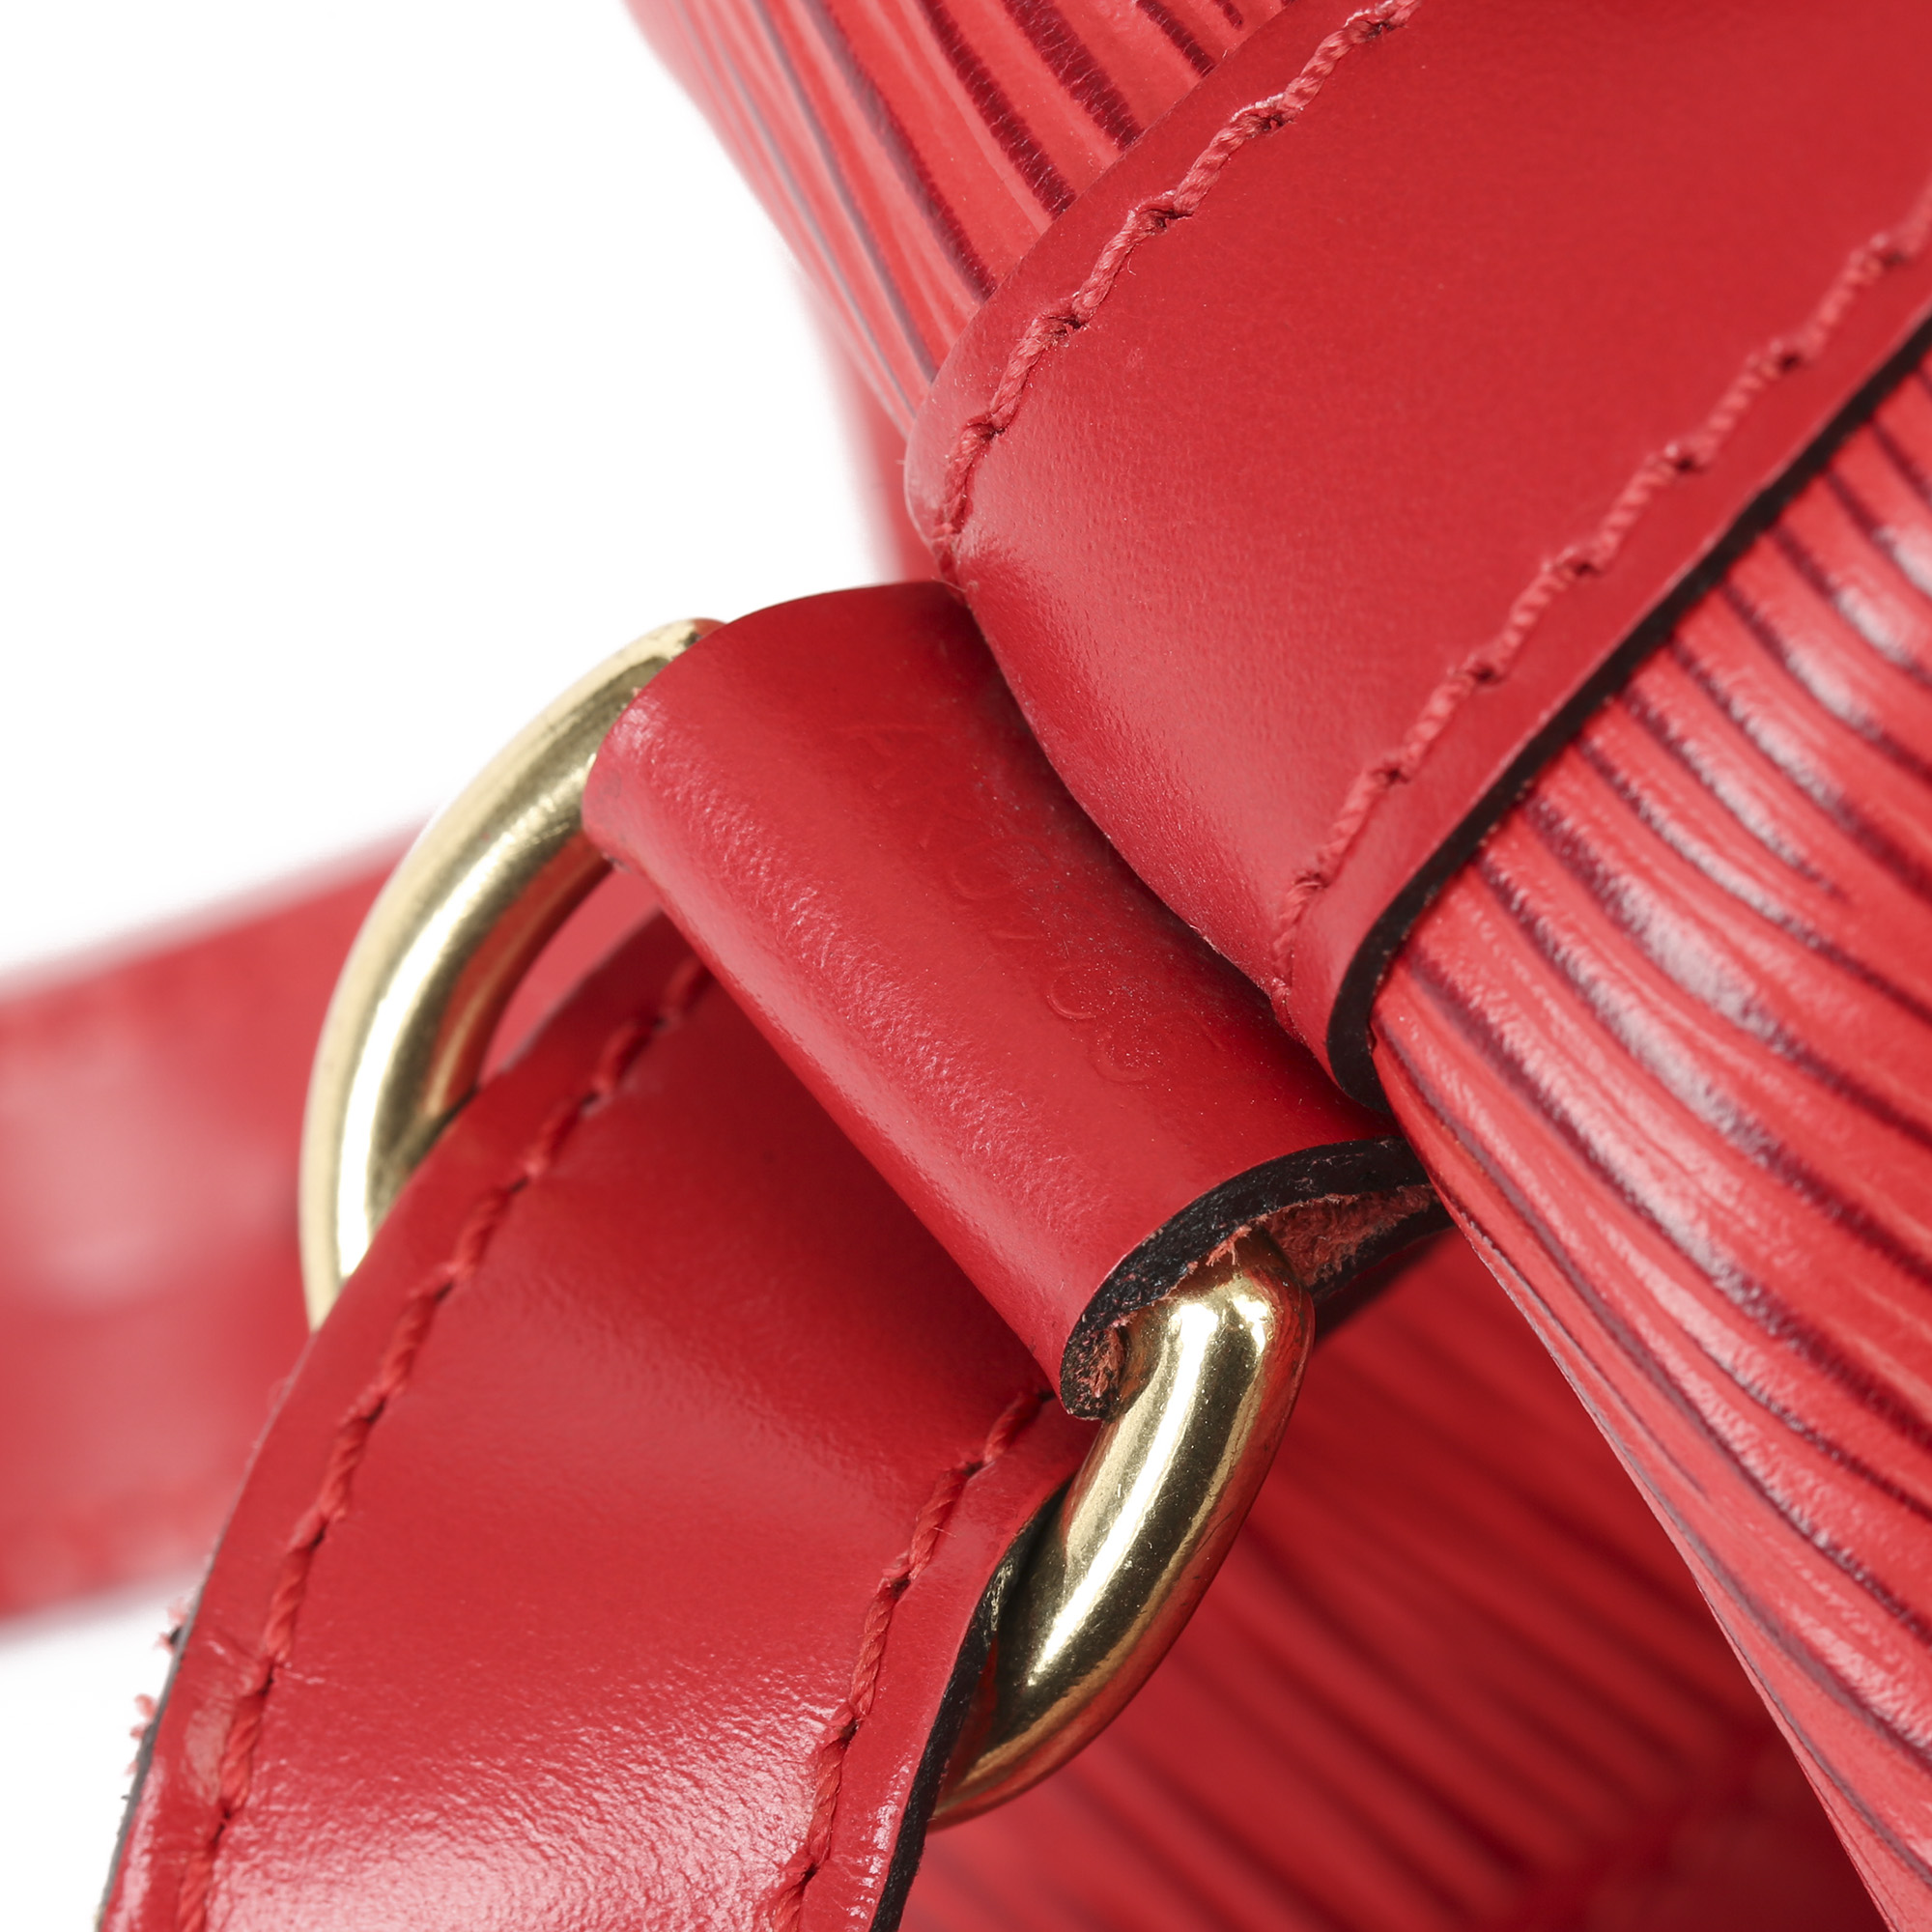 Louis Vuitton Red Epi Leather Vintage Petit NoŽ - Image 4 of 11